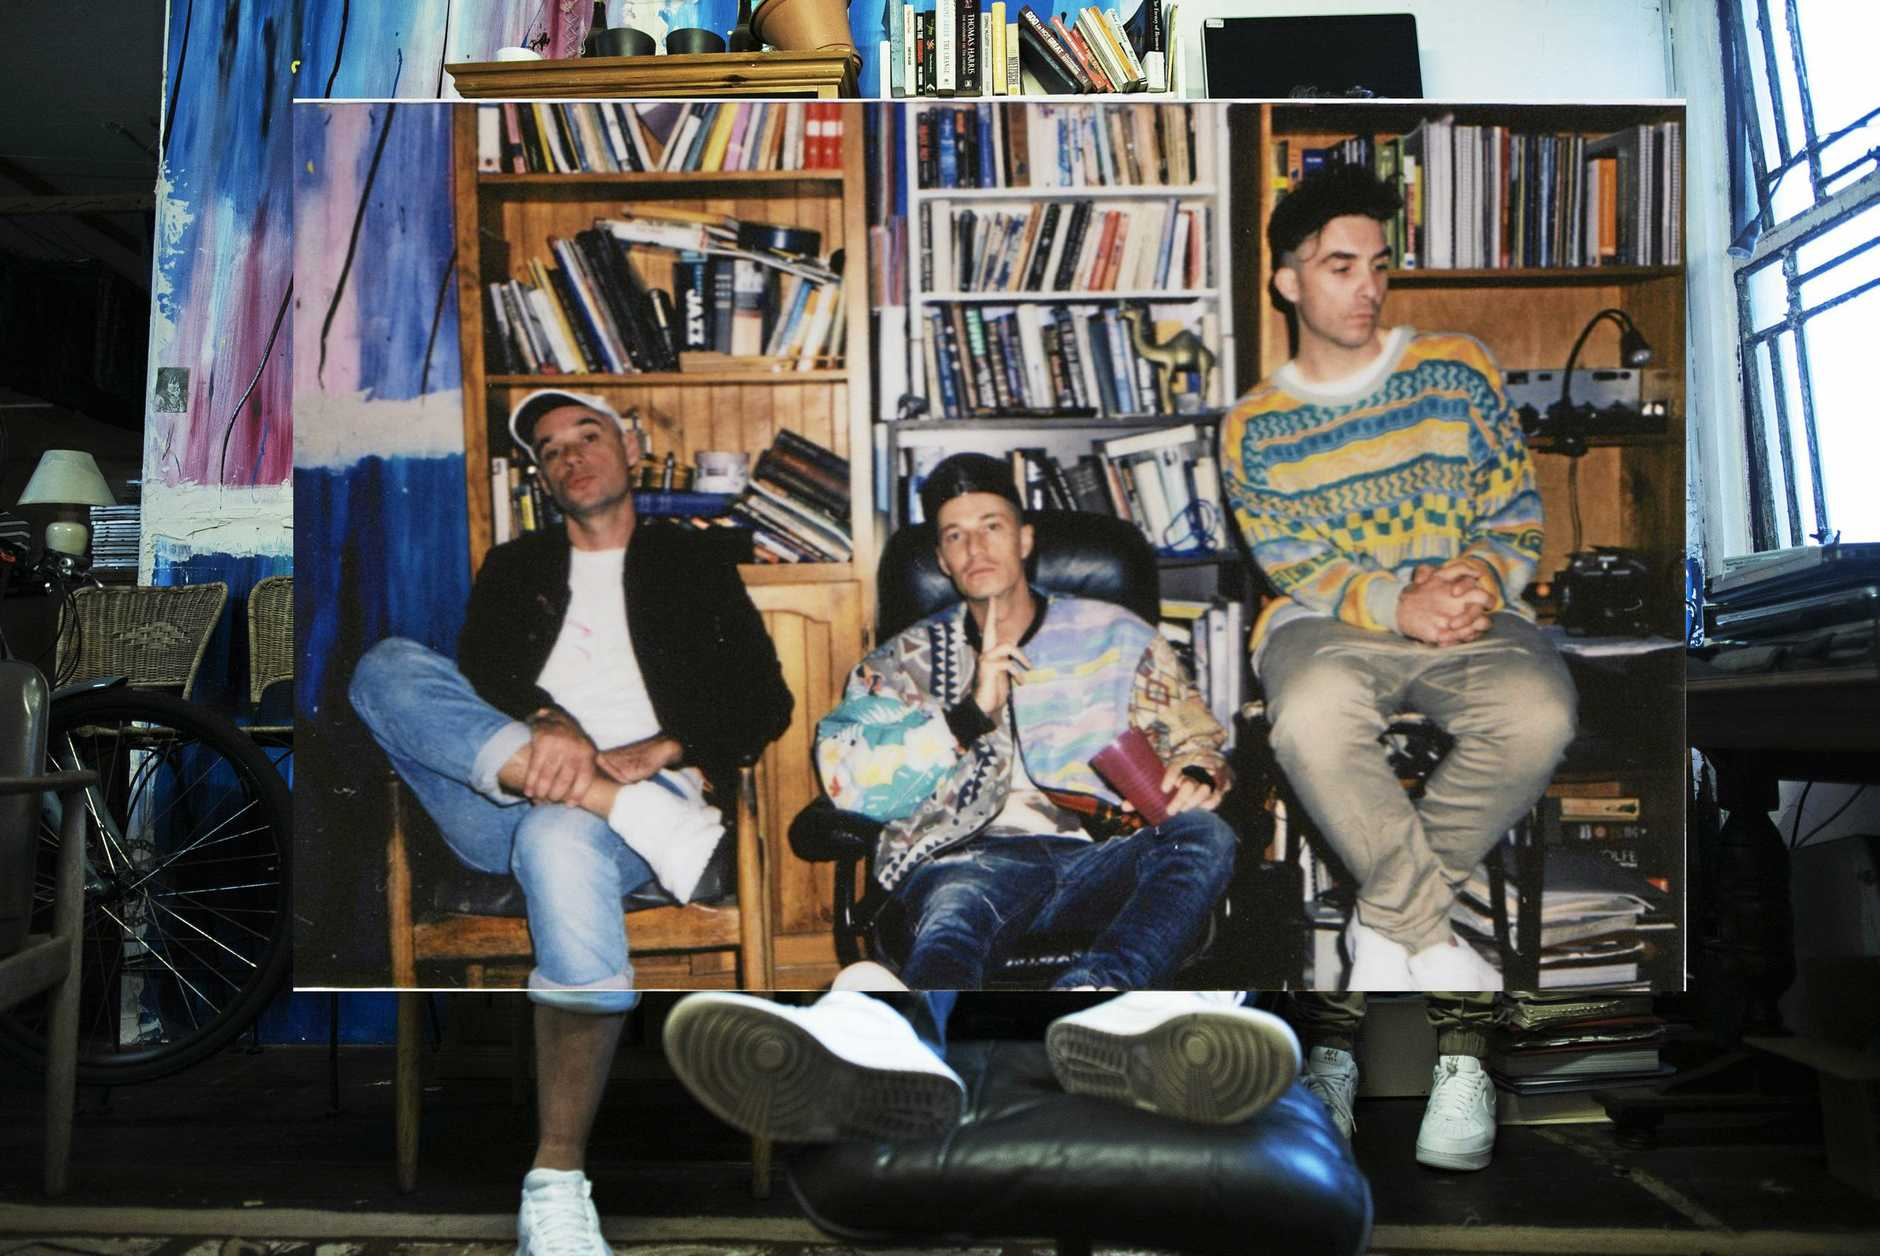 Thundamentals are an Australian hip hop group originating from the Blue Mountains region formed by Tuka, Jeswon, and Morgs.